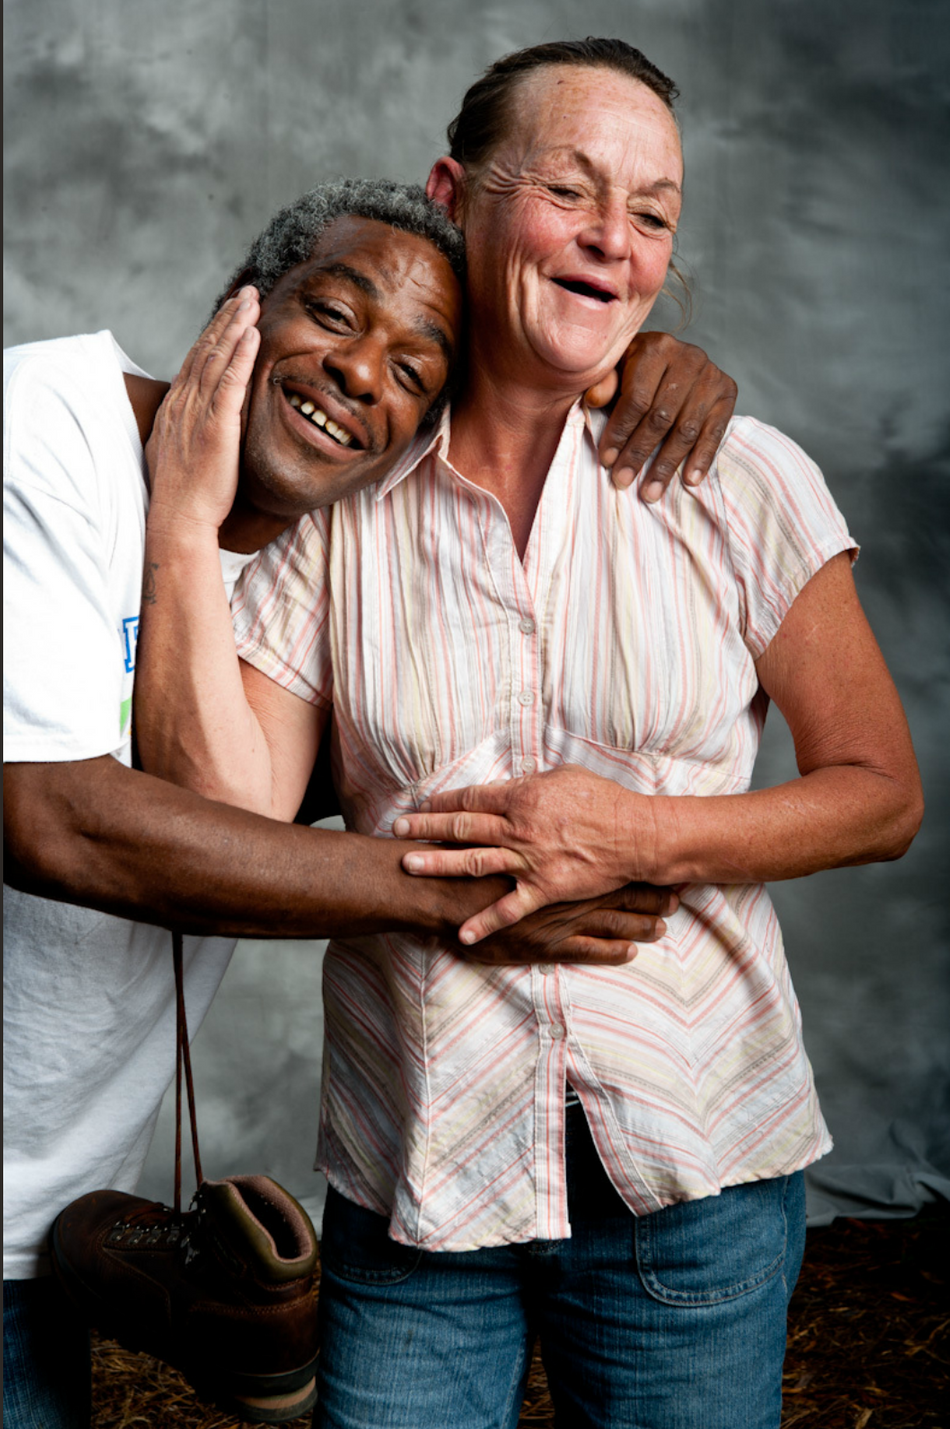 Color portrait of man and woman from Atlanta, Georgia.  Photograph by Donald Chambers.